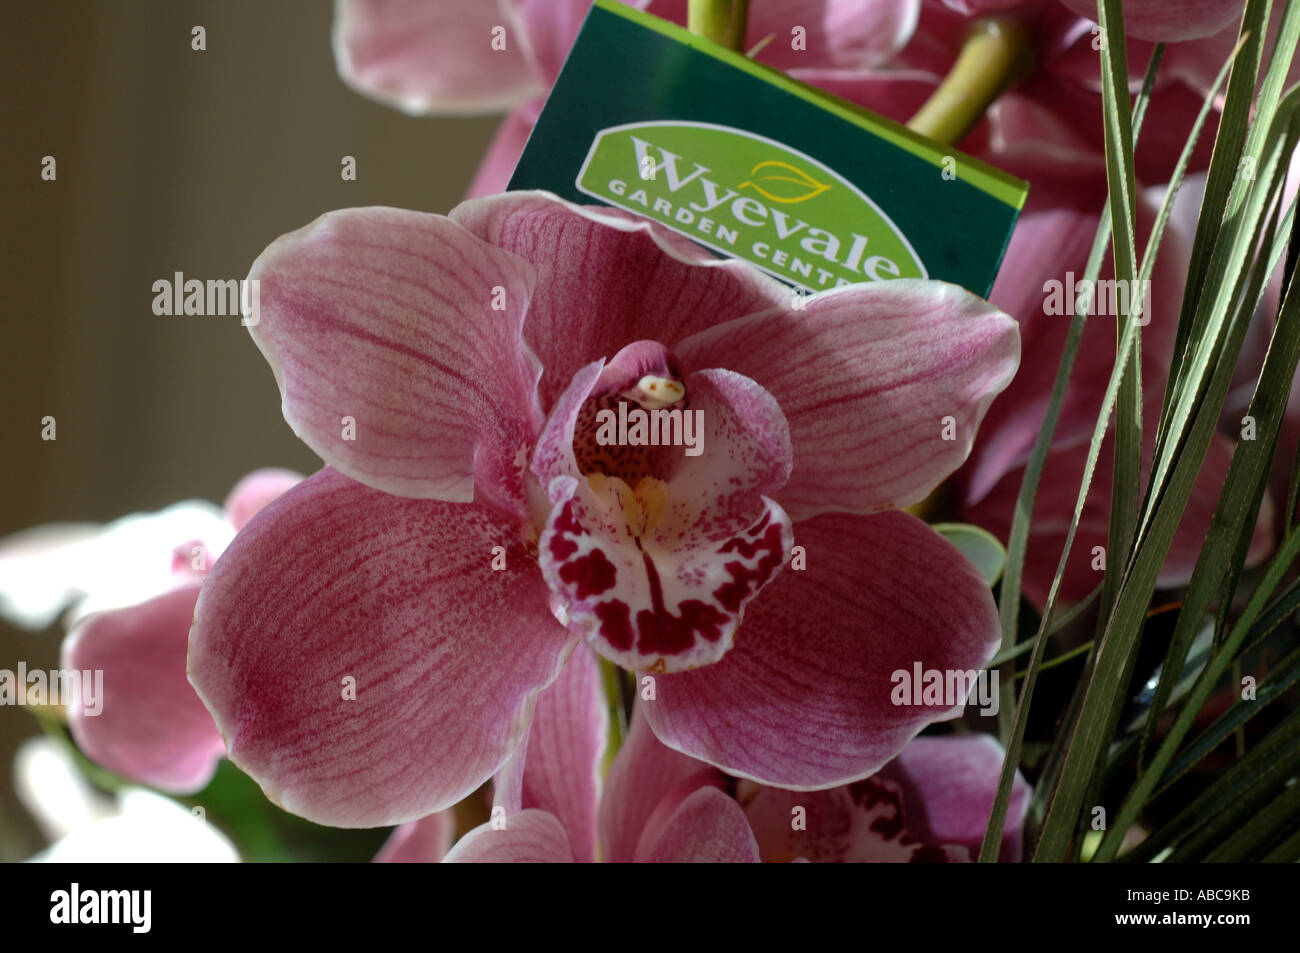 Remarkable A Wyevale Garden Centre Label Tag In A Collection Of Pink Orchids  With Glamorous A Wyevale Garden Centre Label Tag In A Collection Of Pink Orchids For Sale  In A Wyevale Garden Centre At Brighton With Cute Made To Measure Garden Sheds Also Fairy Houses For The Garden In Addition Garden Shoes Clogs And Plastic Garden Storage Shed As Well As Solar Lights For Garden Shed Additionally Moss End Garden Centre From Alamycom With   Glamorous A Wyevale Garden Centre Label Tag In A Collection Of Pink Orchids  With Cute A Wyevale Garden Centre Label Tag In A Collection Of Pink Orchids For Sale  In A Wyevale Garden Centre At Brighton And Remarkable Made To Measure Garden Sheds Also Fairy Houses For The Garden In Addition Garden Shoes Clogs From Alamycom